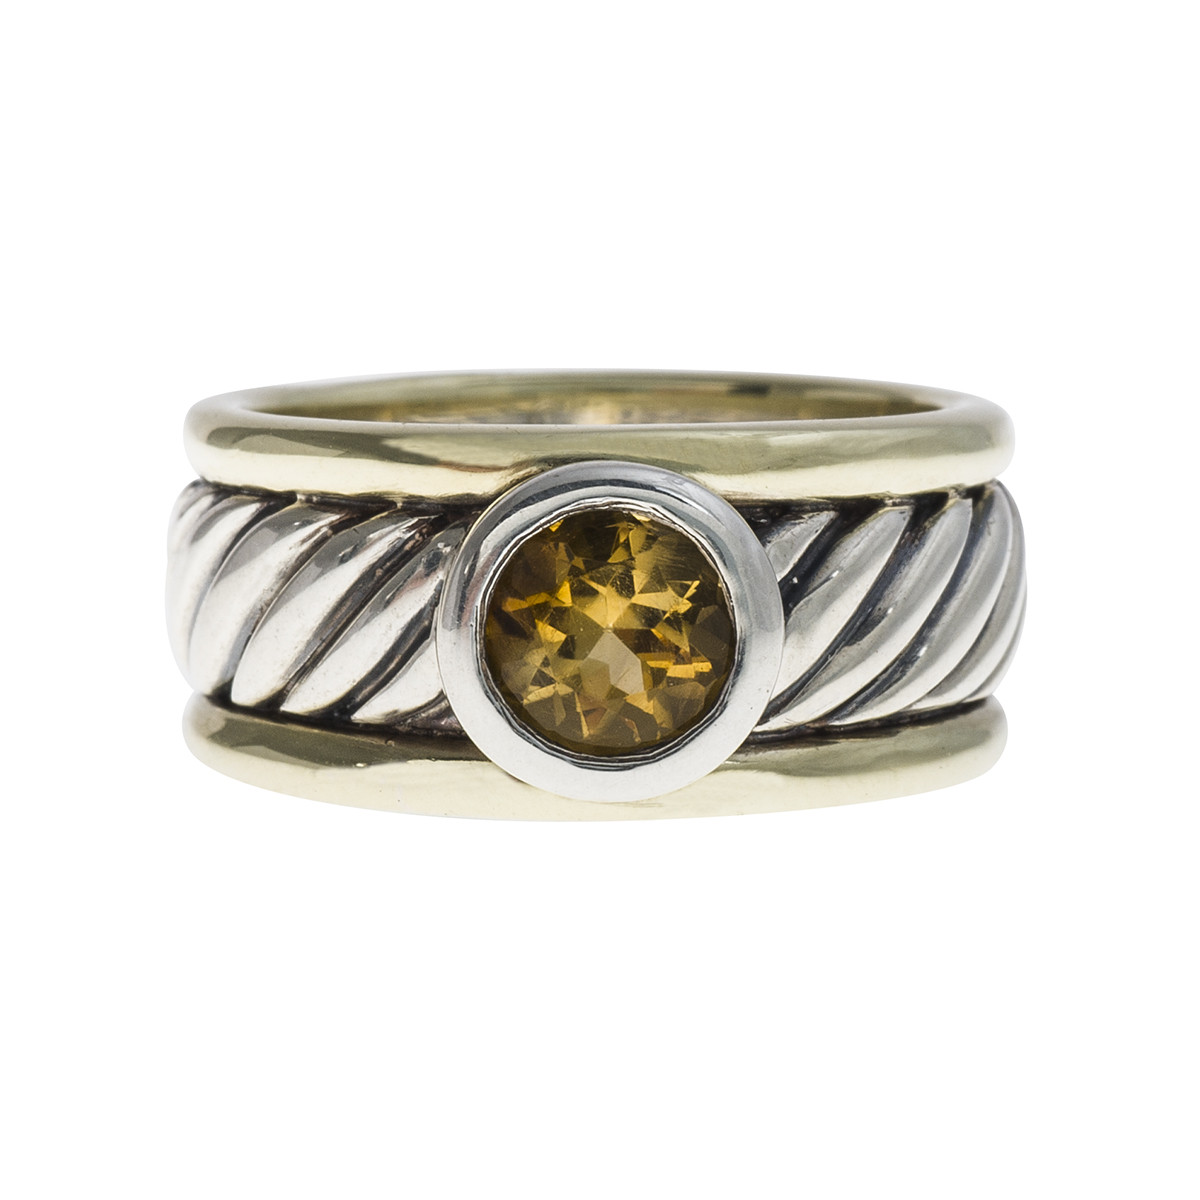 Vintage 14k Gold & Sterling Silver David Yurman Citrine Cable Ring